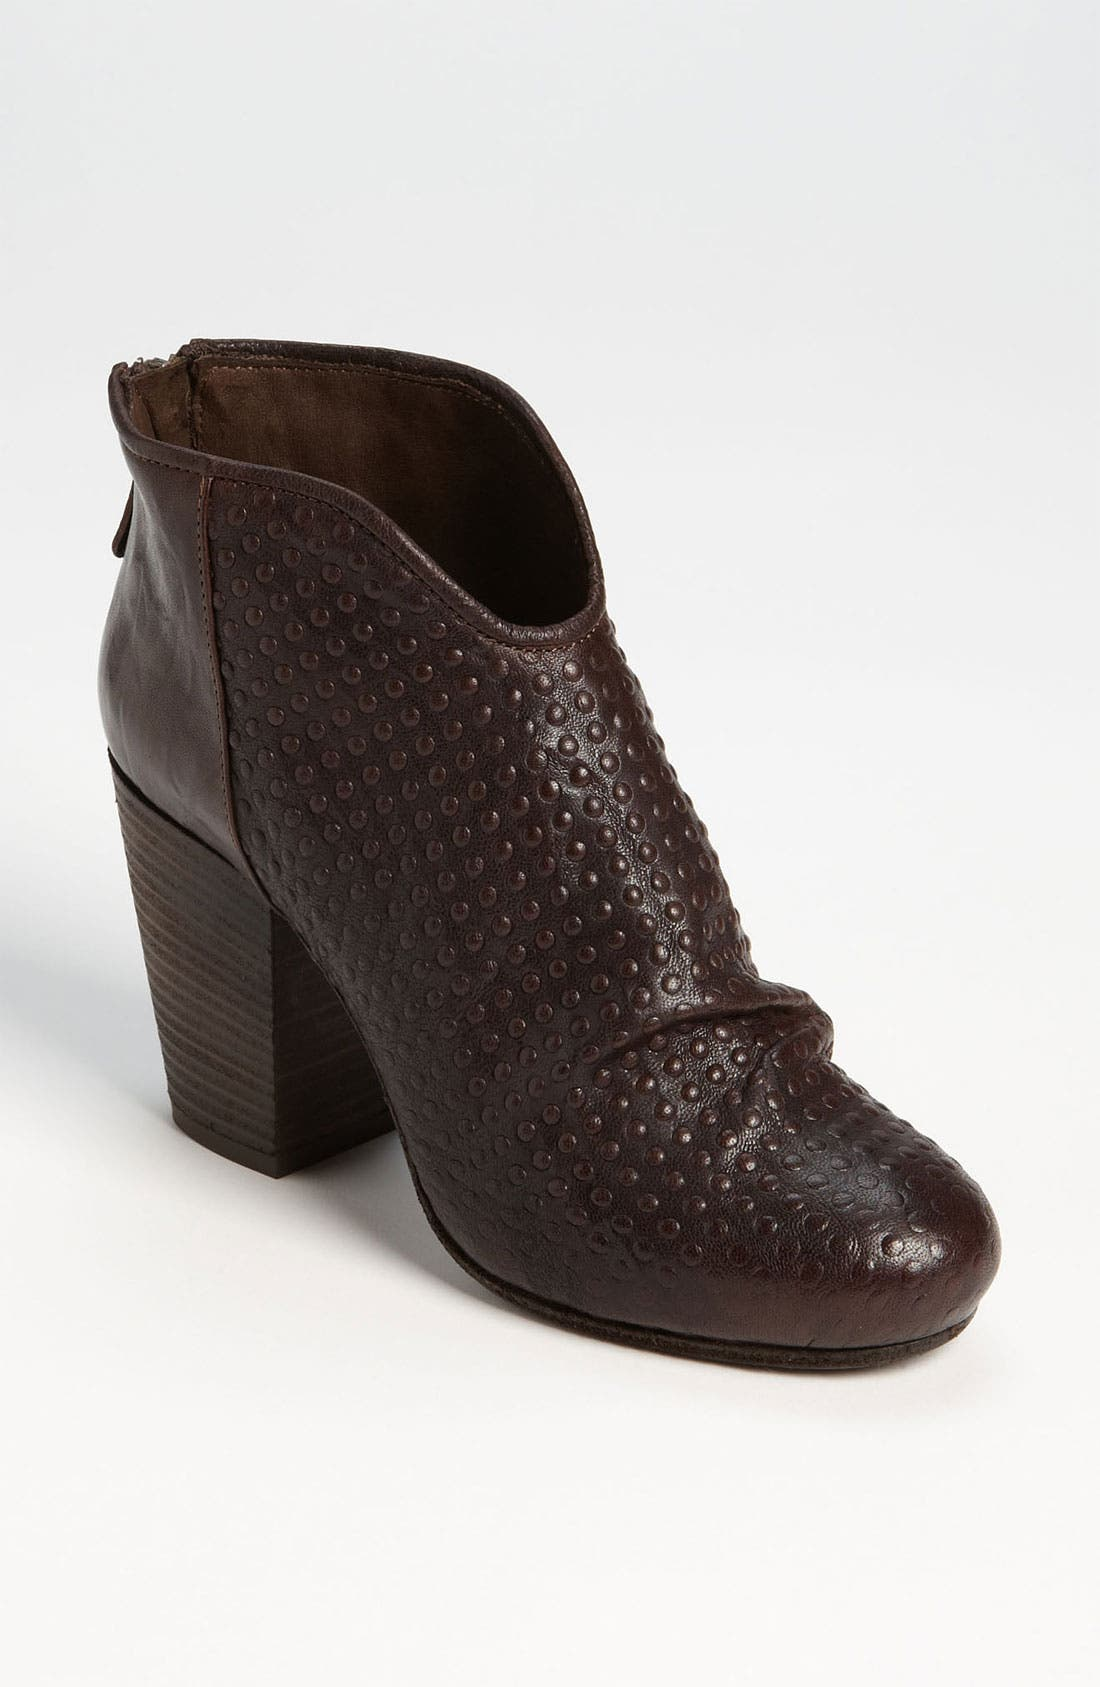 Alternate Image 1 Selected - Latitude Femme Ankle Boot